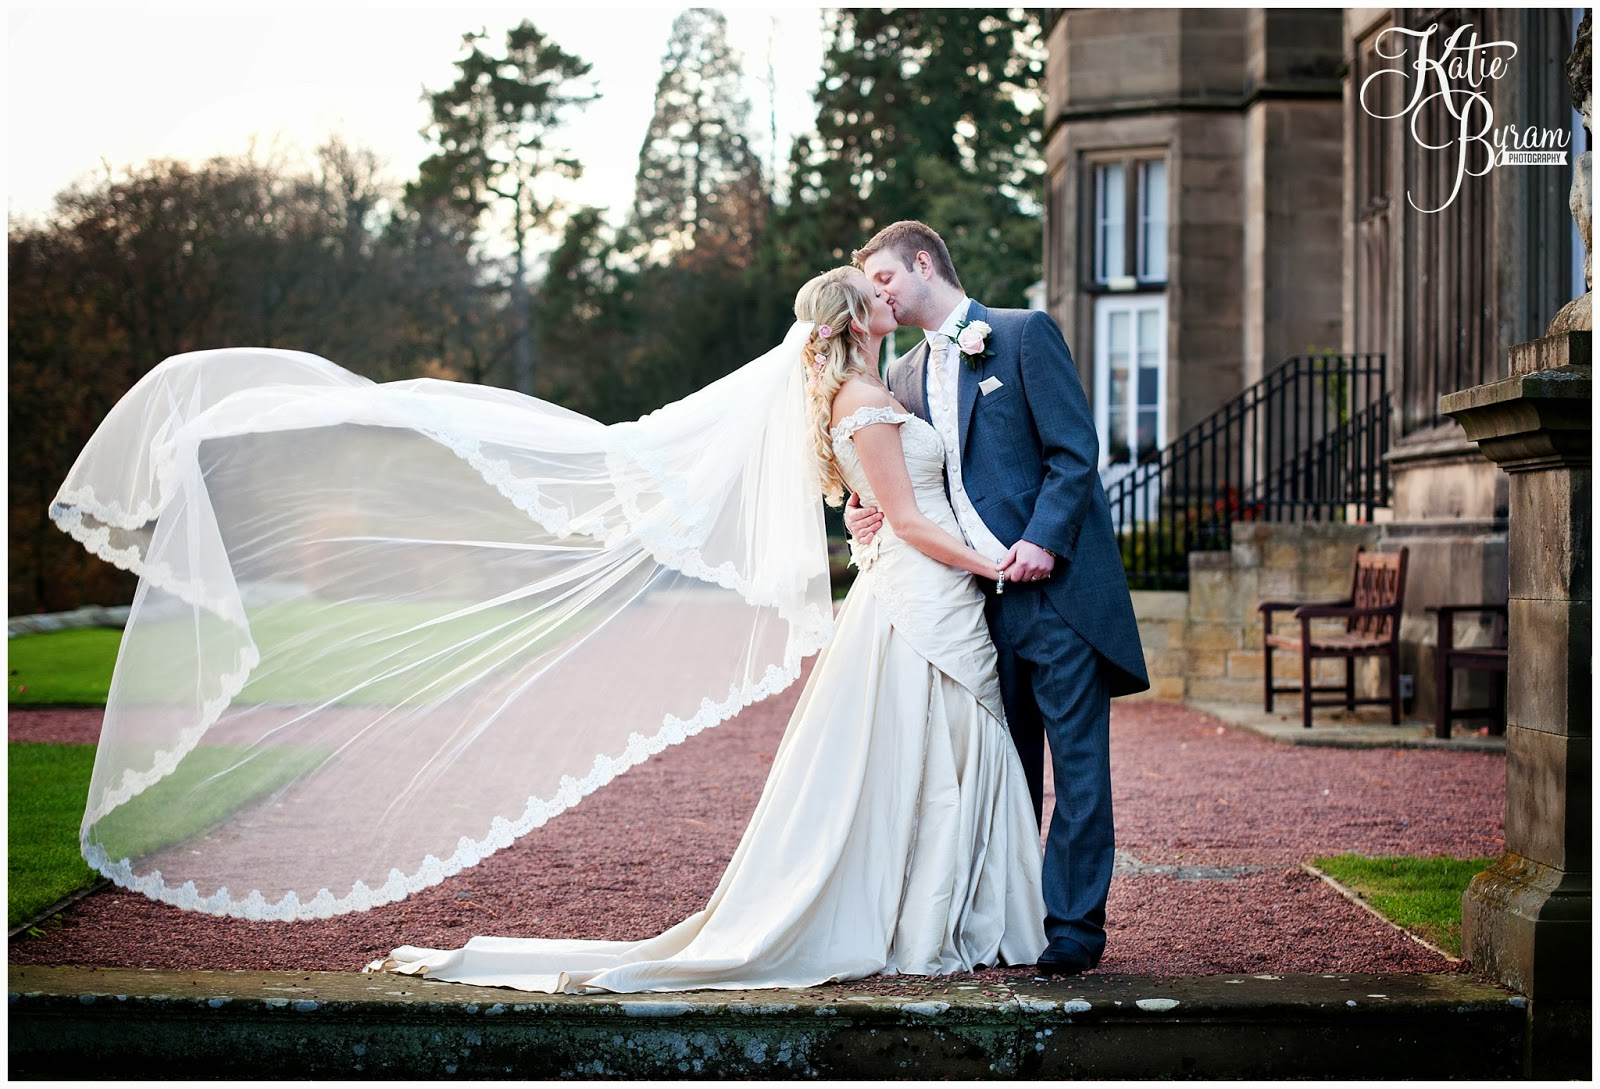 cathedral length veil, wedding veil, matfen hall wedding, matfen wedding, northumberland wedding, katie byram photography, vintage wedding, quirky wedding photography, north east wedding, north east wedding venue, great hall matfen, event diva, by wendy, just perfect,